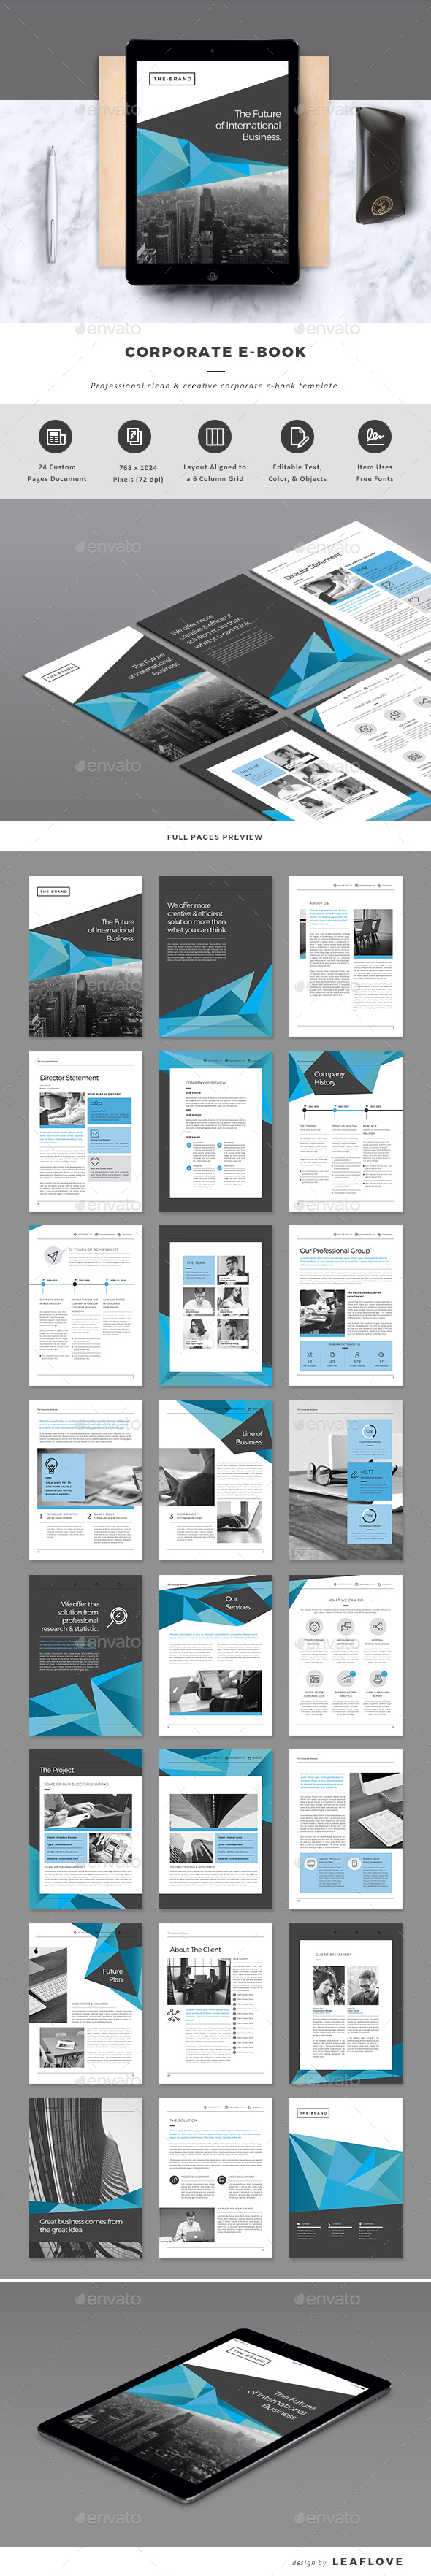 Great 1 2 3 Nu Opgaver Kapitel Resume Small 1 Hexagon Template Rectangular 1 Inch Button Template 1 Year Experience Resume Format For Net Developer Old 10 Minute Resume Builder Fresh10 Off Coupon Template EBook Templates From GraphicRiver